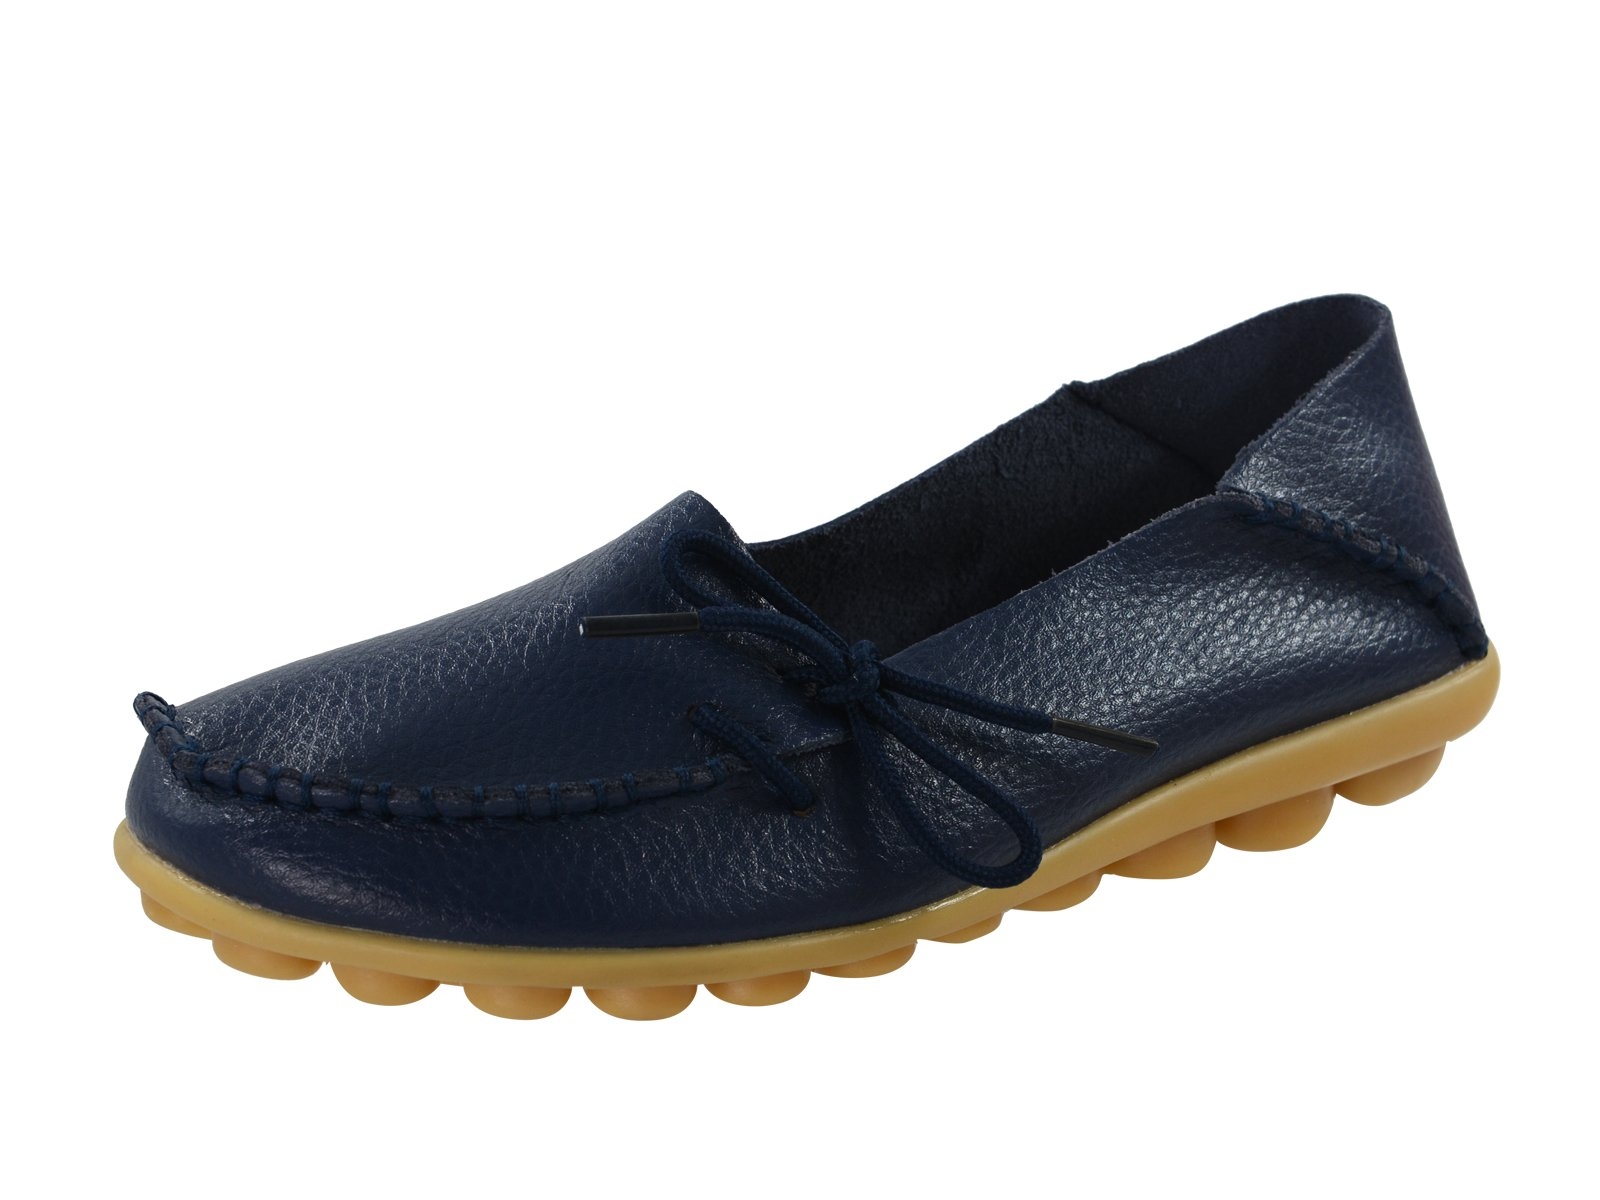 Century Star Women's Casual Cowhide Lace-Up Slip-On Driving Moccasin Loafer Flats Slippers Boat Shoes Dark Blue 7 B(M) US